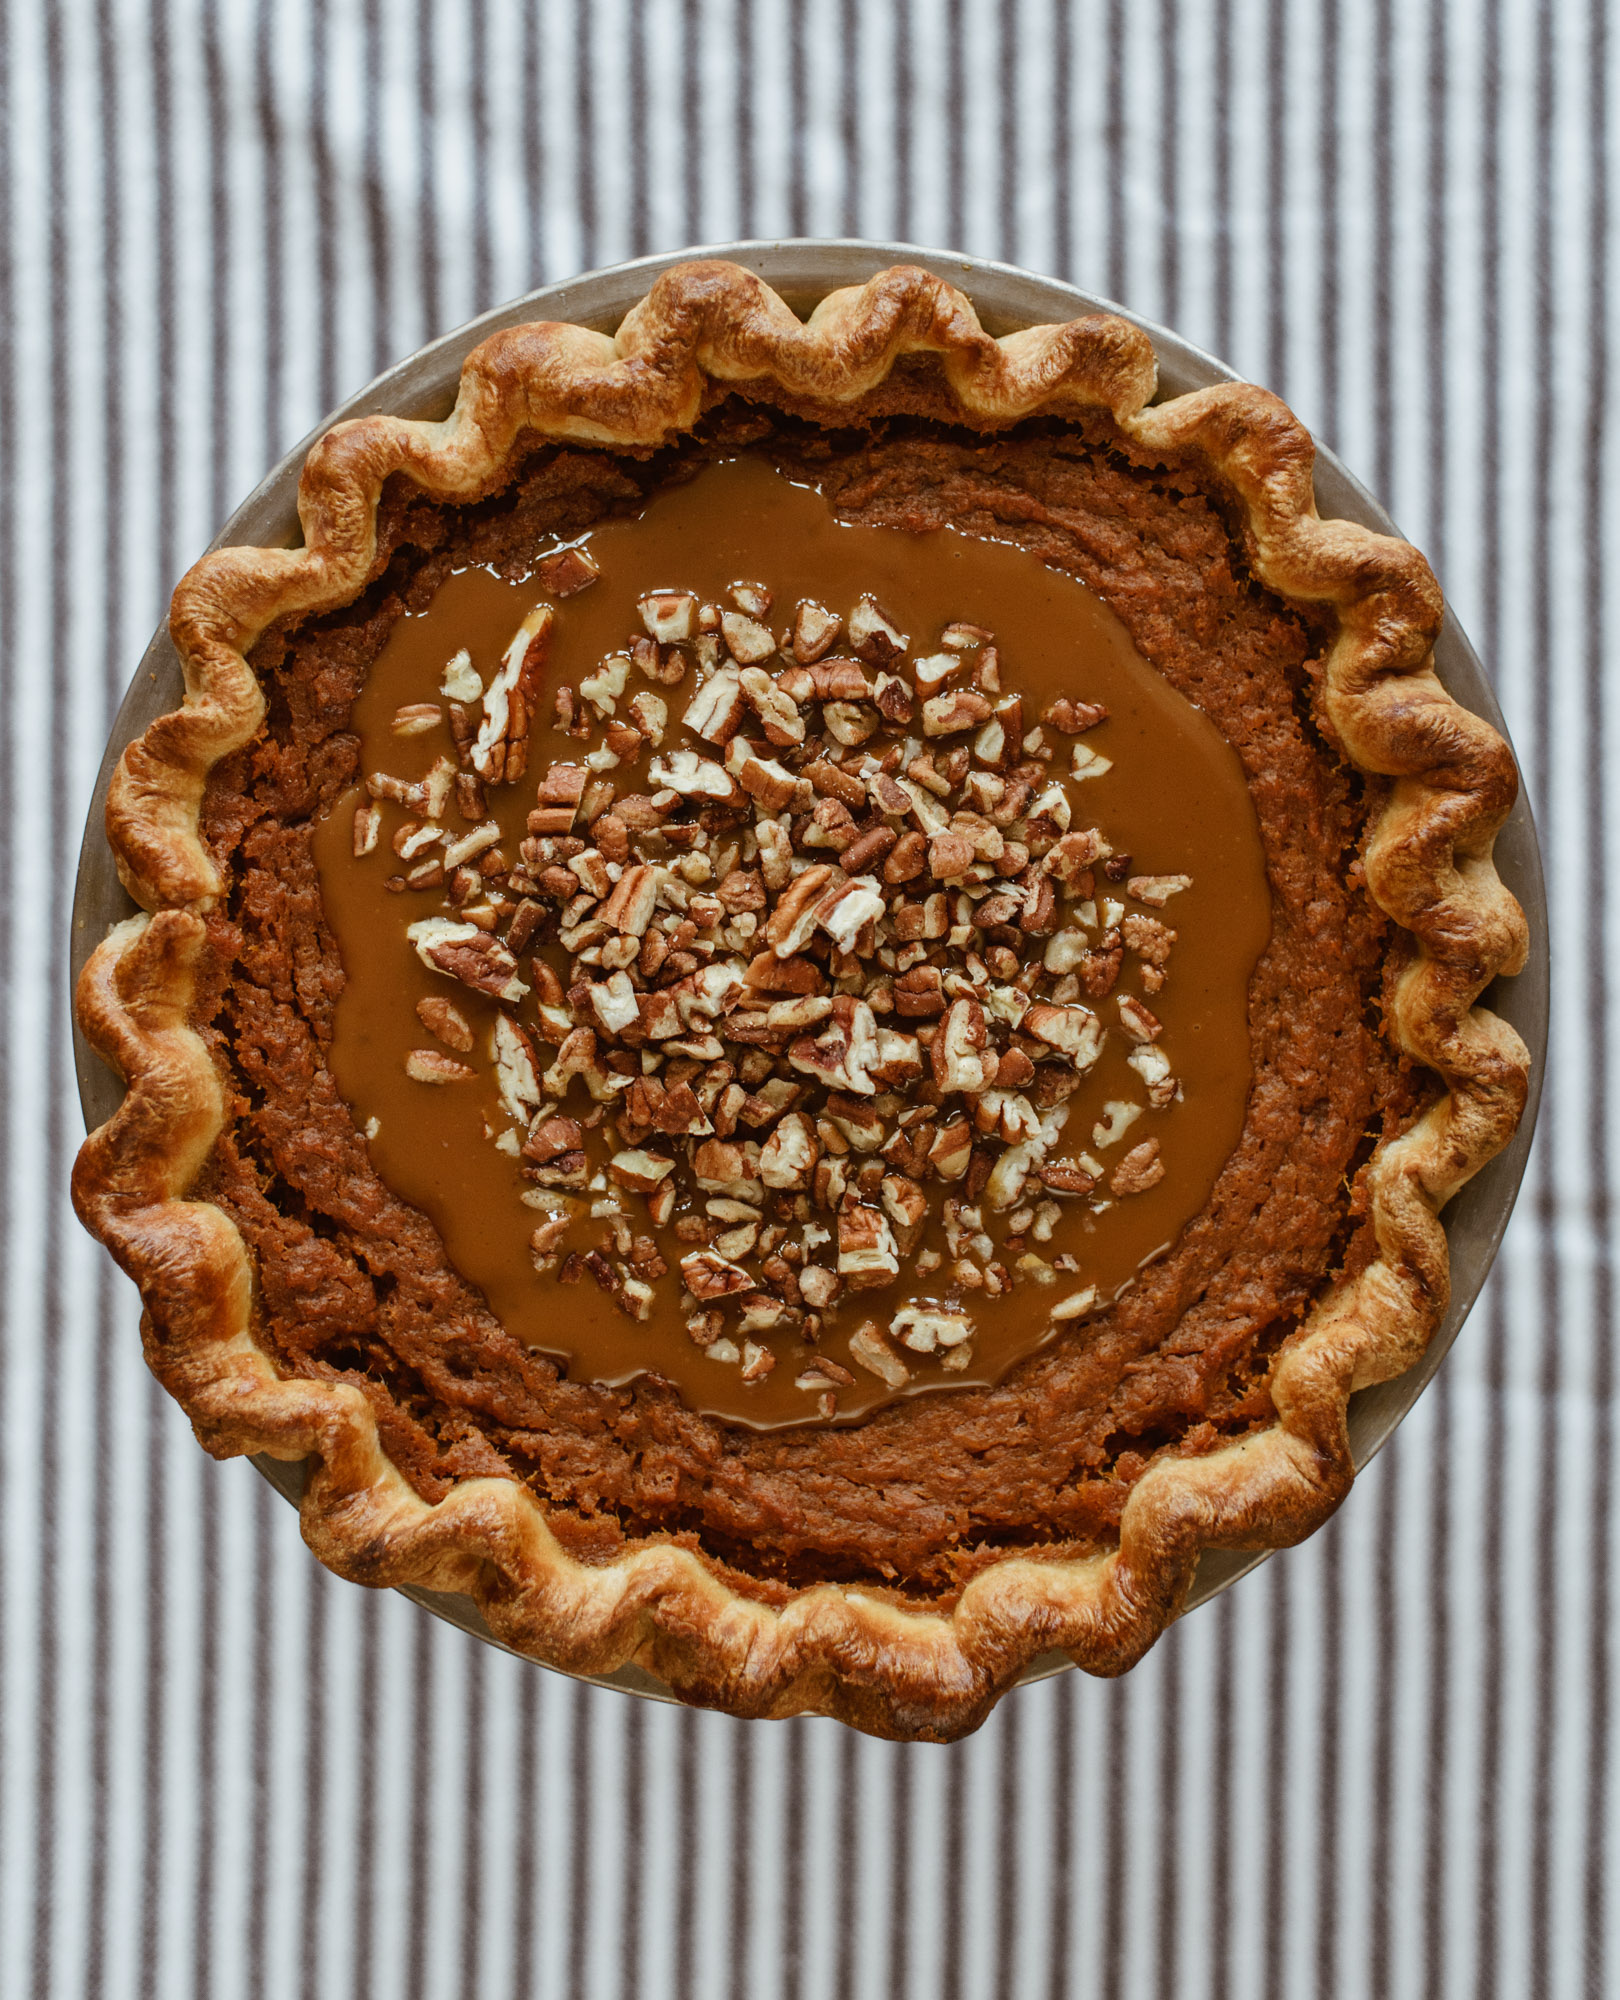 CHICAGO MAGAZINE - //This bold little number plays up the classic fruit-cheese pairing while keeping the sweetness in check.//Five Very Adventurous Pies to Try This Thanksgiving